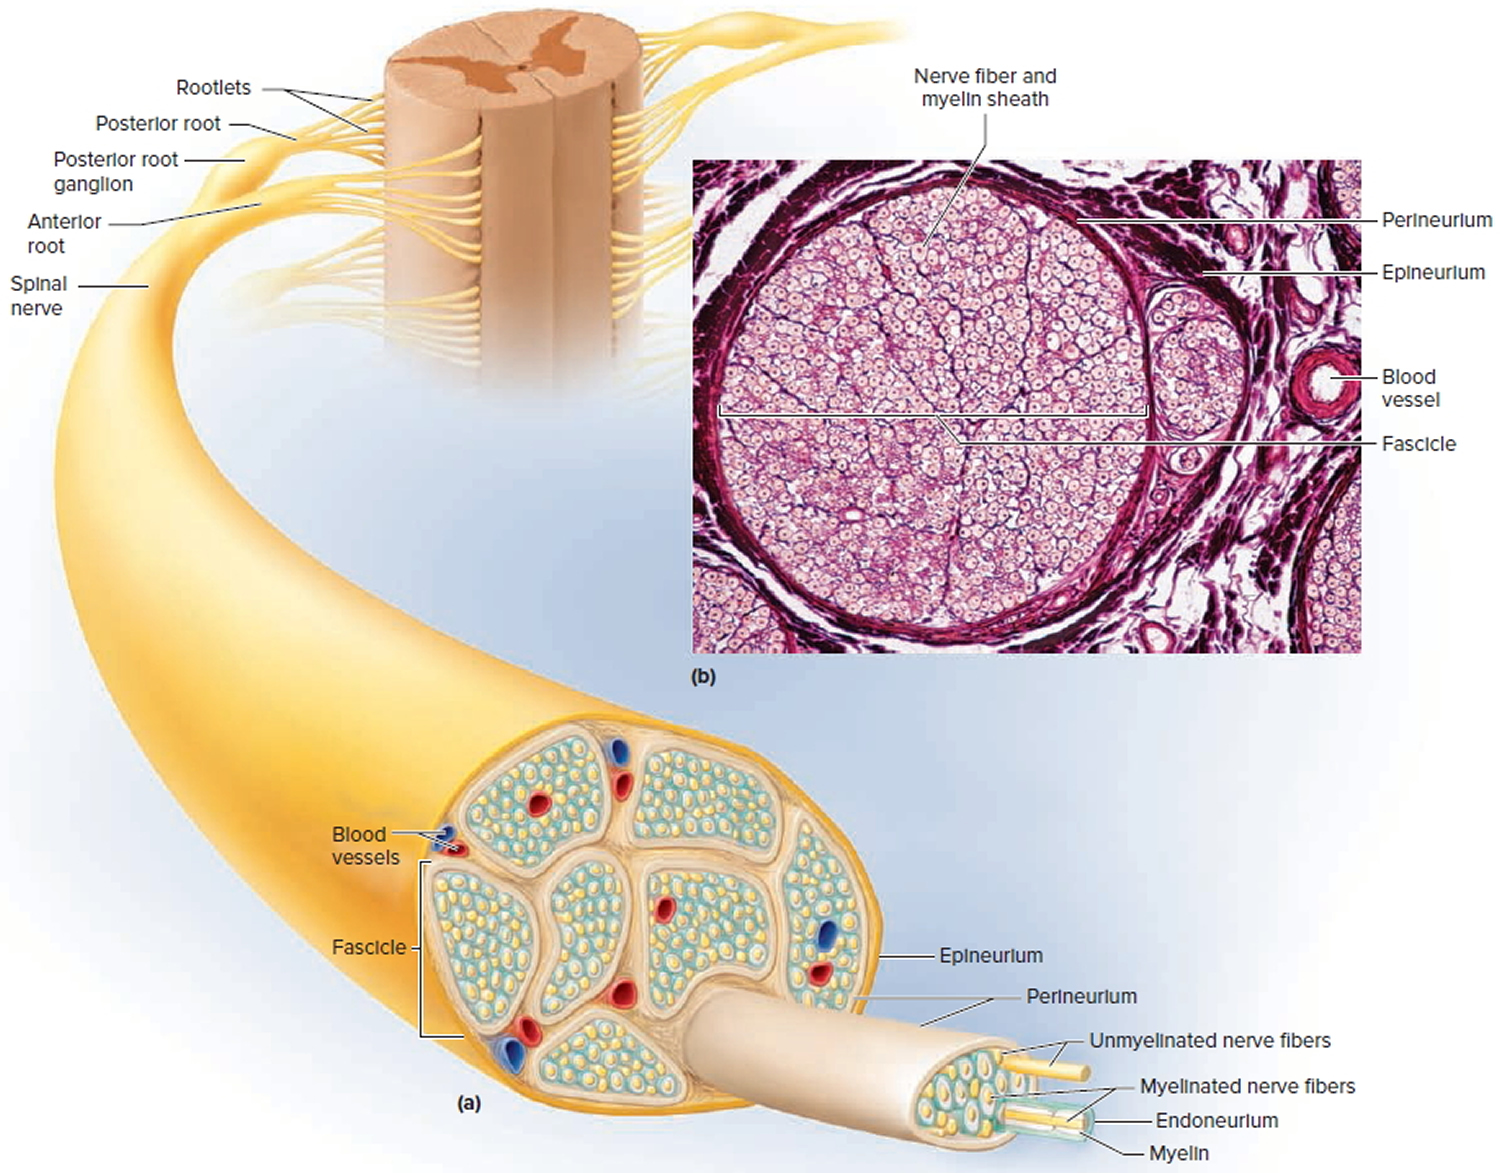 Sensory Nervous System - Organs and Functions